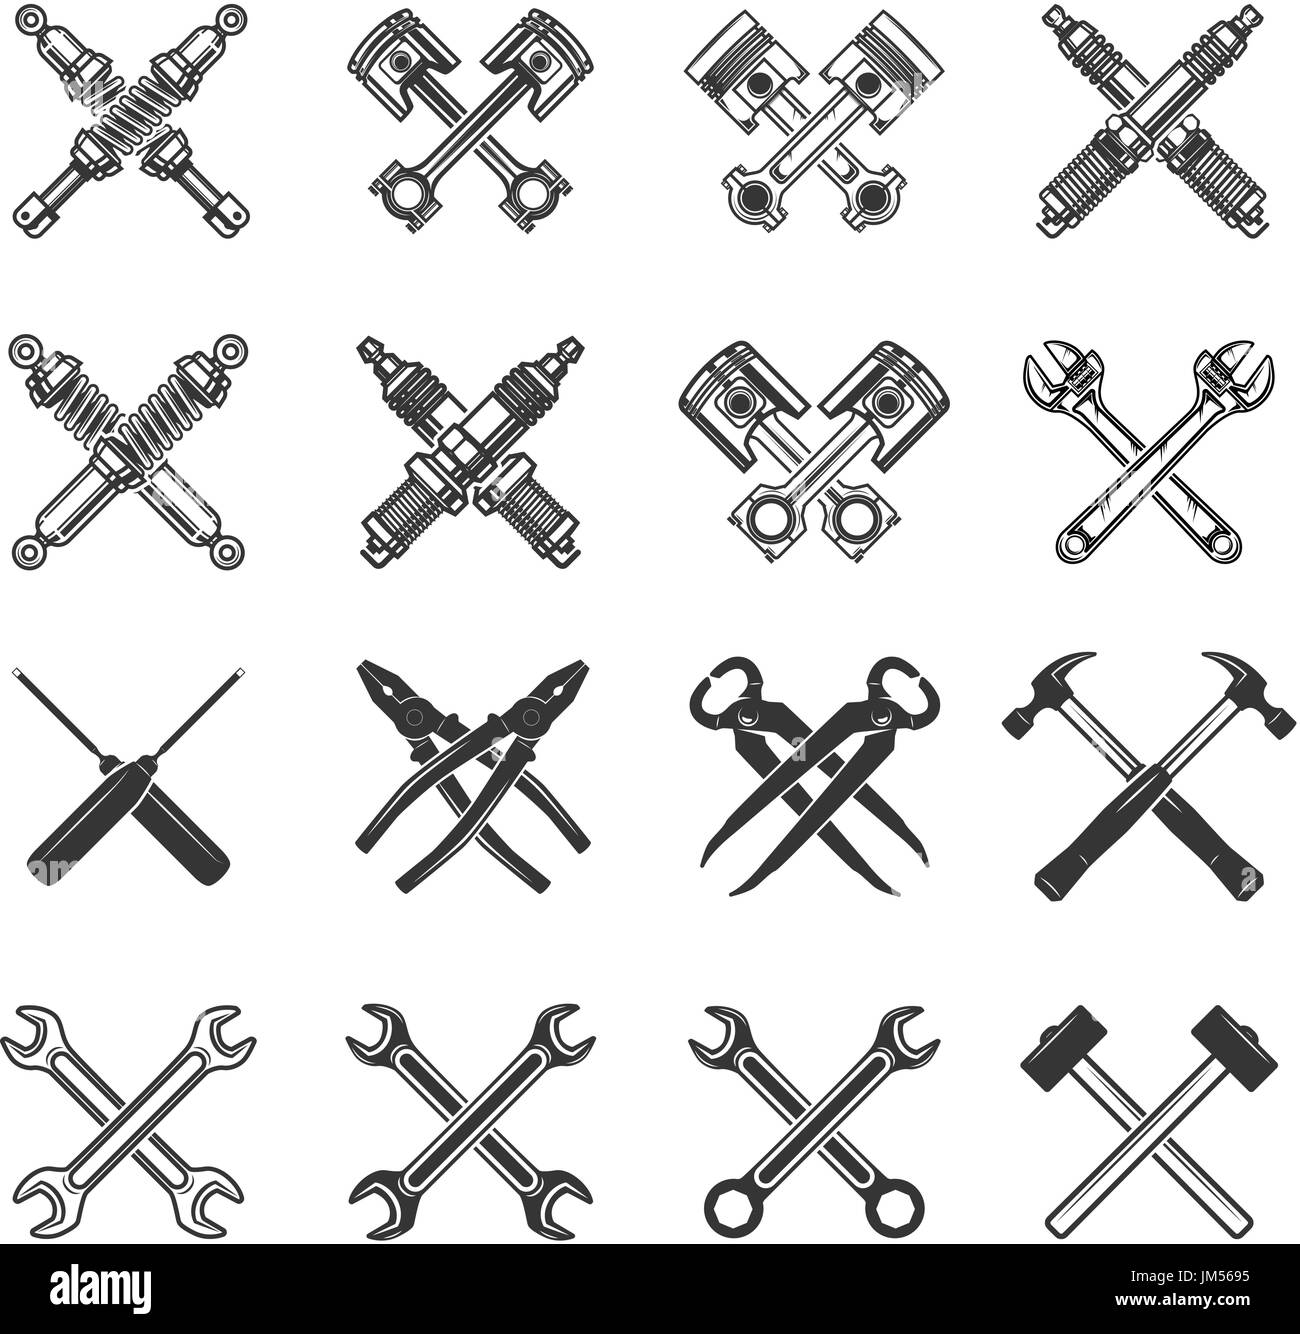 Set of the crossed tools and car parts. Design elements for logo ...